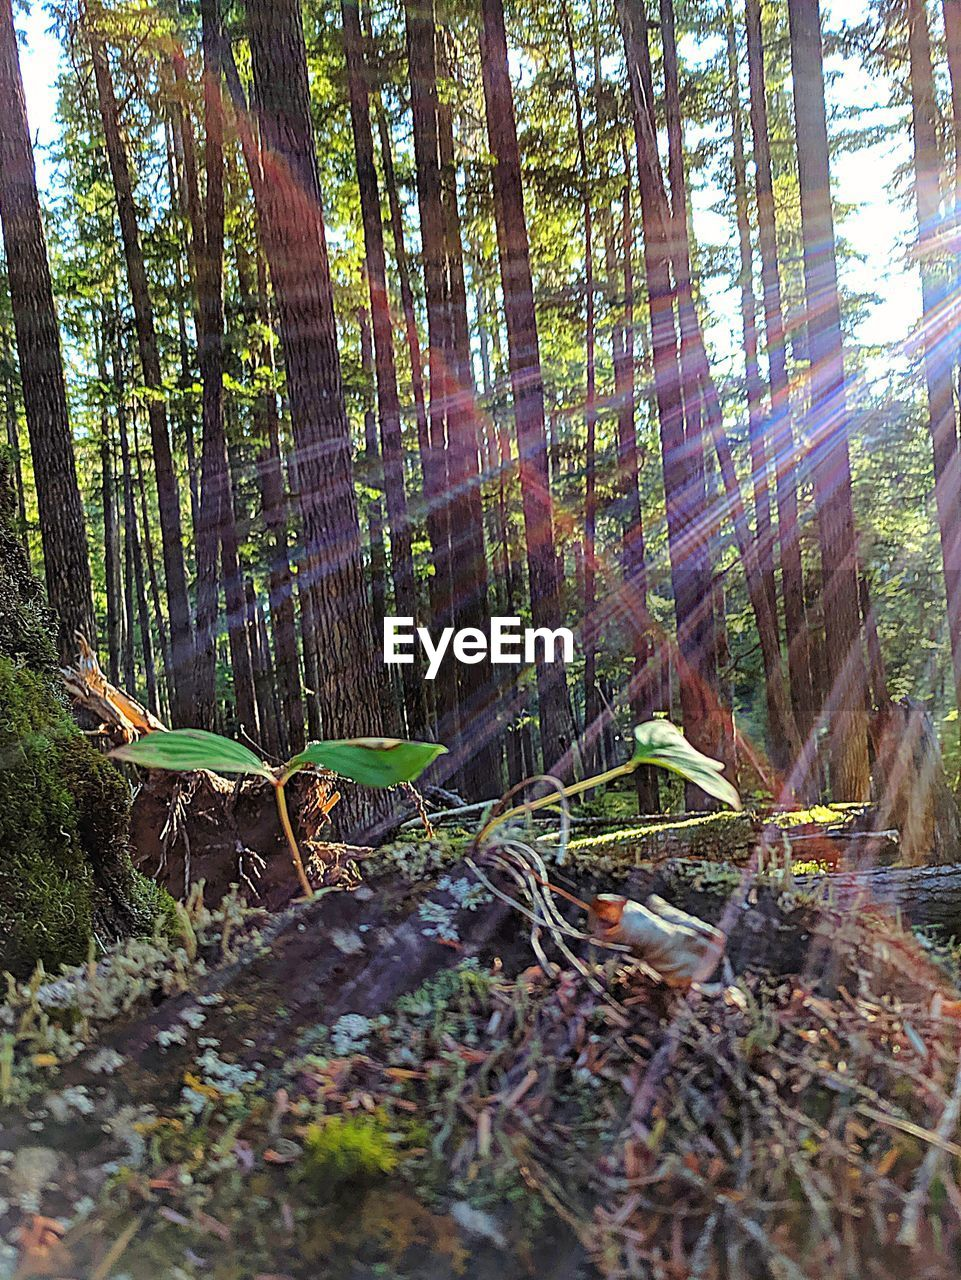 tree, forest, plant, tree trunk, trunk, land, growth, nature, woodland, tranquility, day, beauty in nature, sunlight, no people, tranquil scene, non-urban scene, outdoors, scenics - nature, timber, wood, lens flare, bark